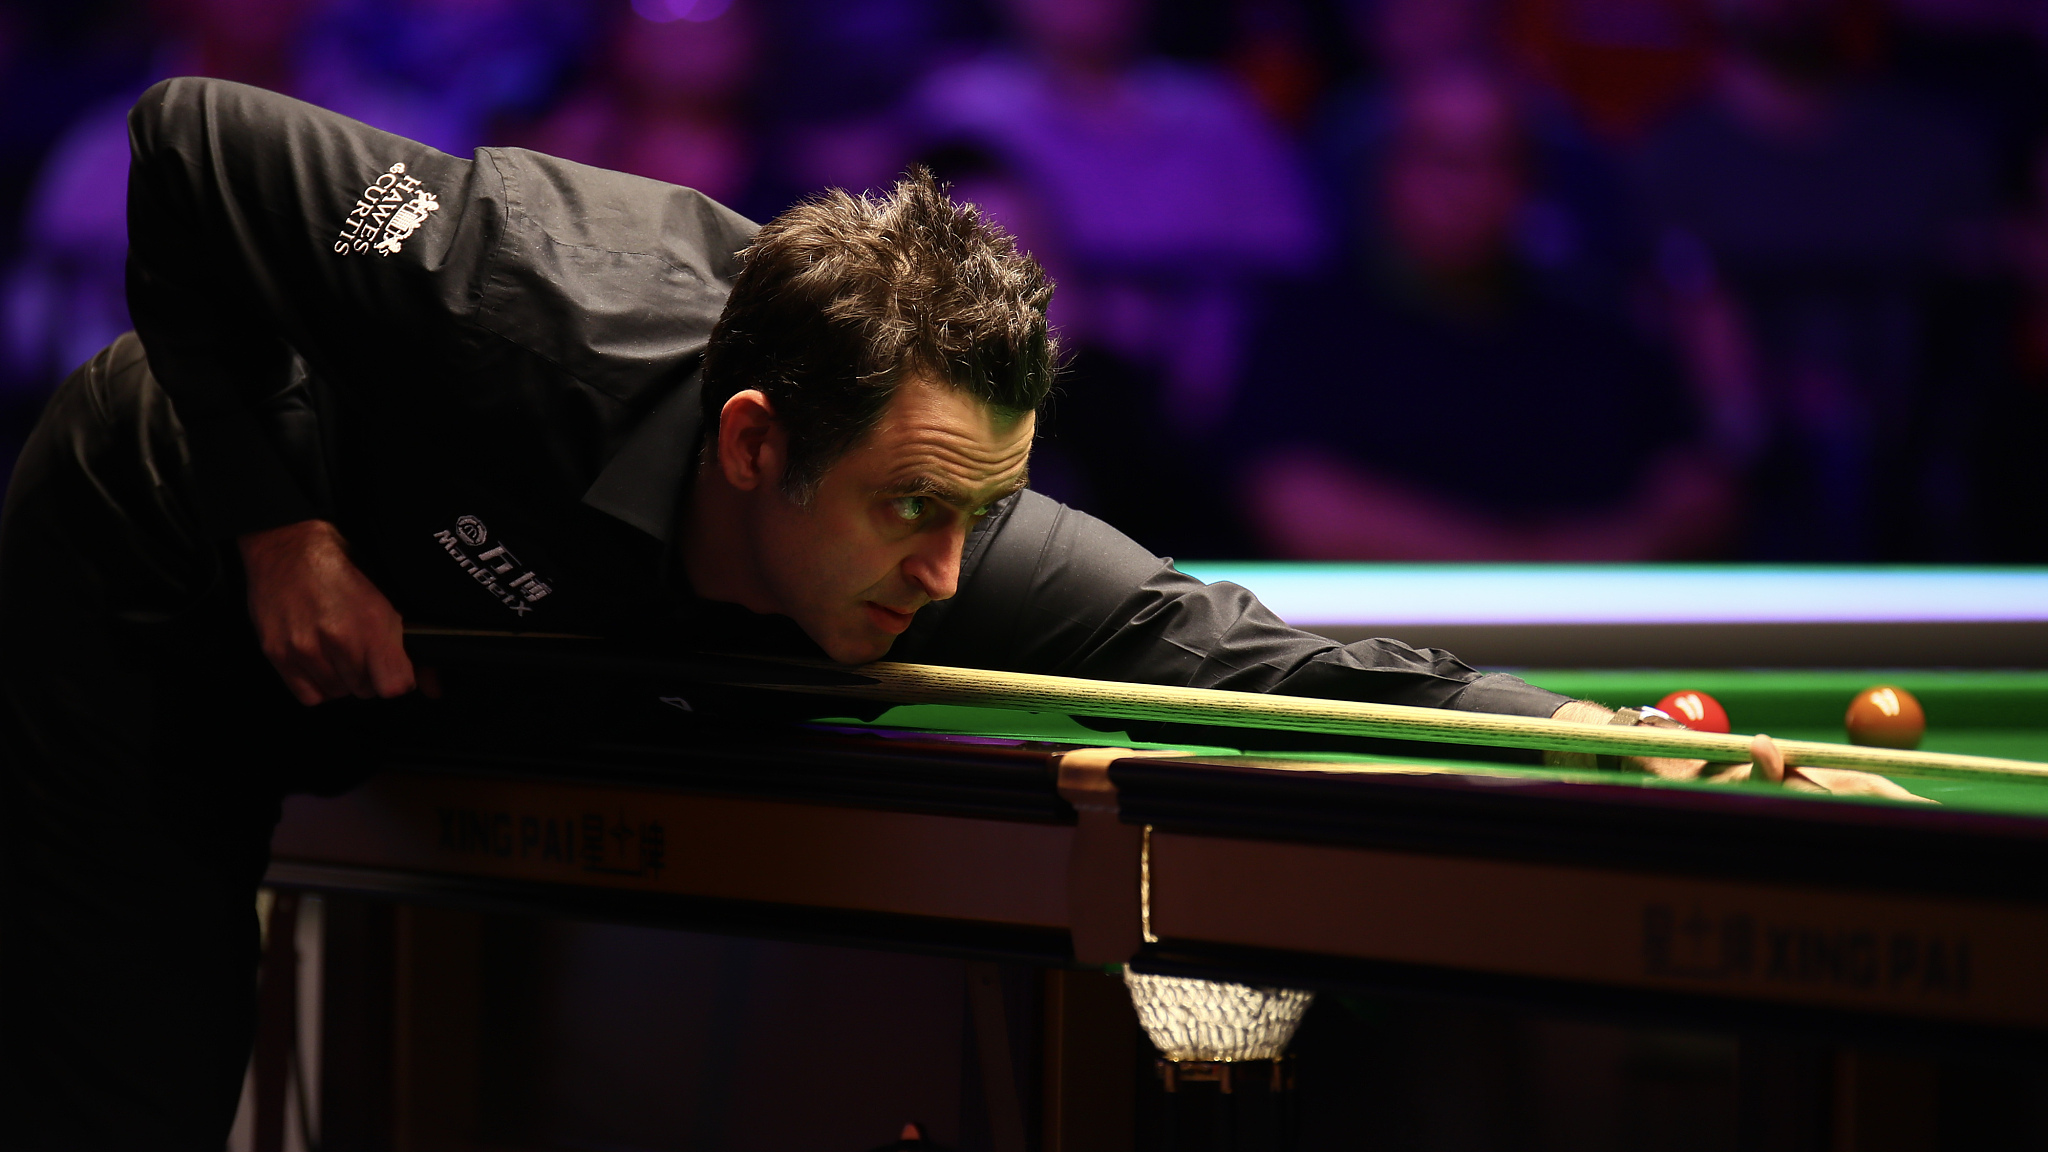 masters snooker final - photo #38